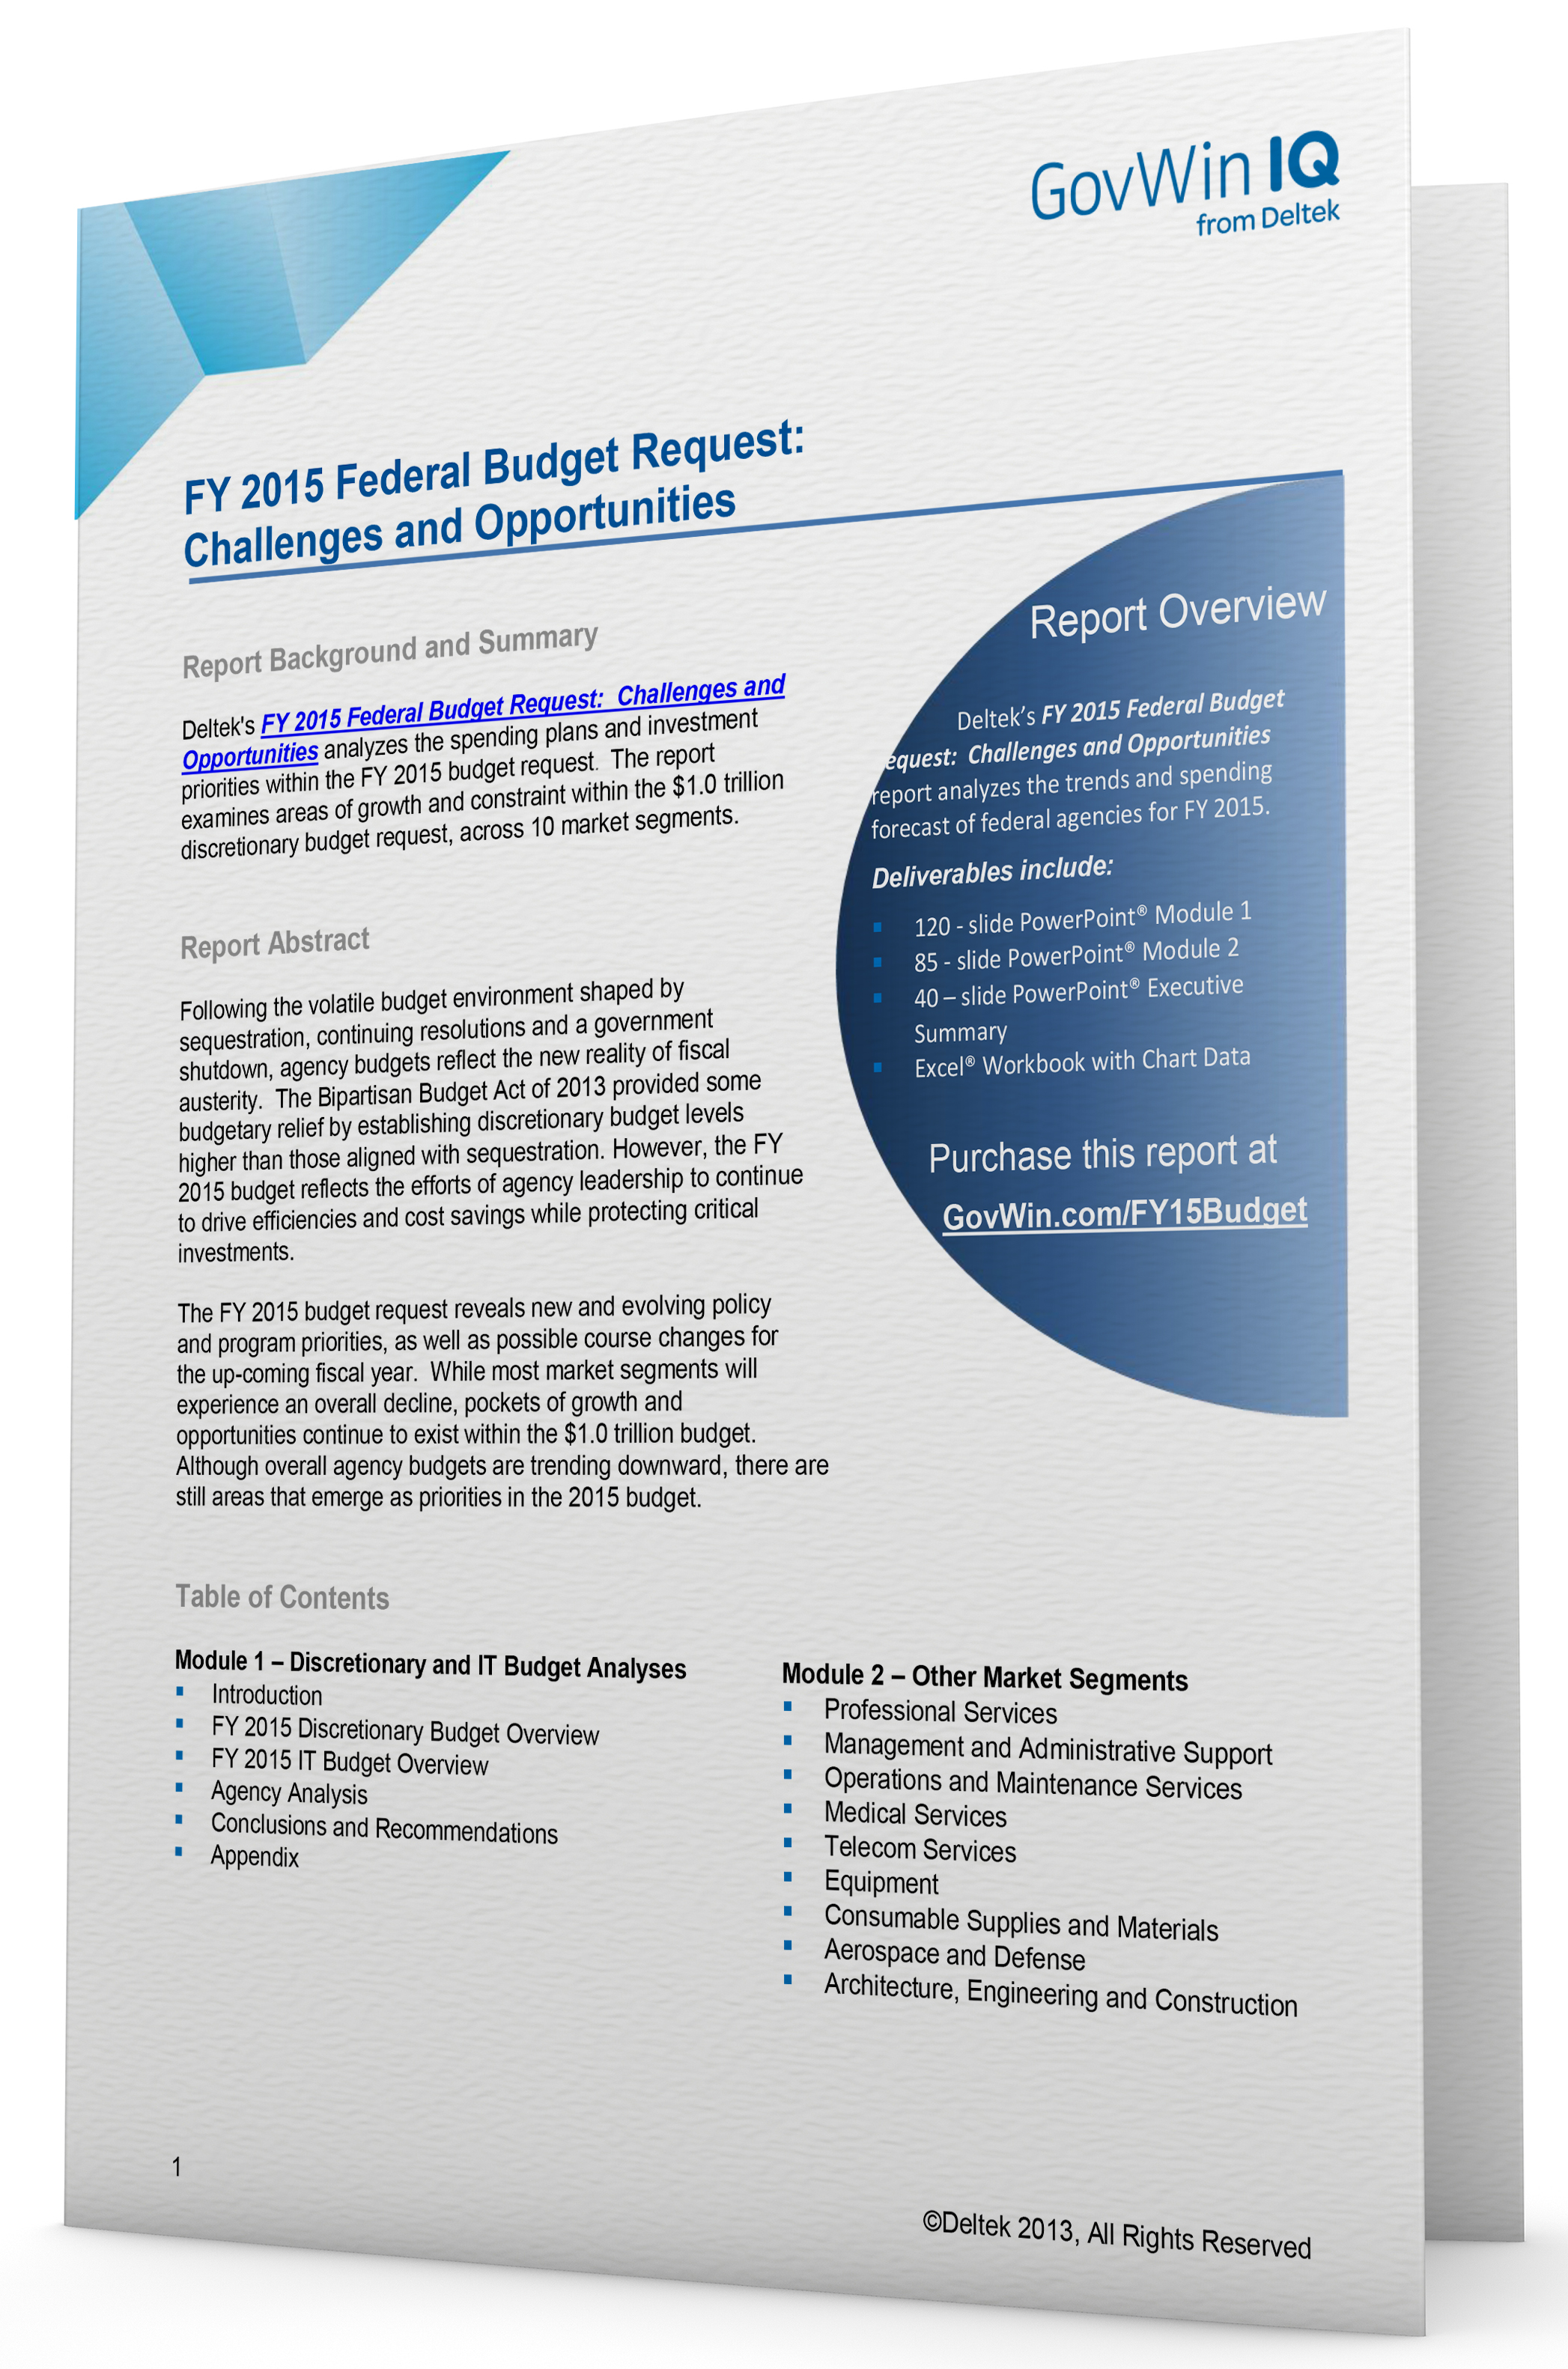 FY 2015 Federal Budget Request: Challenges & Opportunities